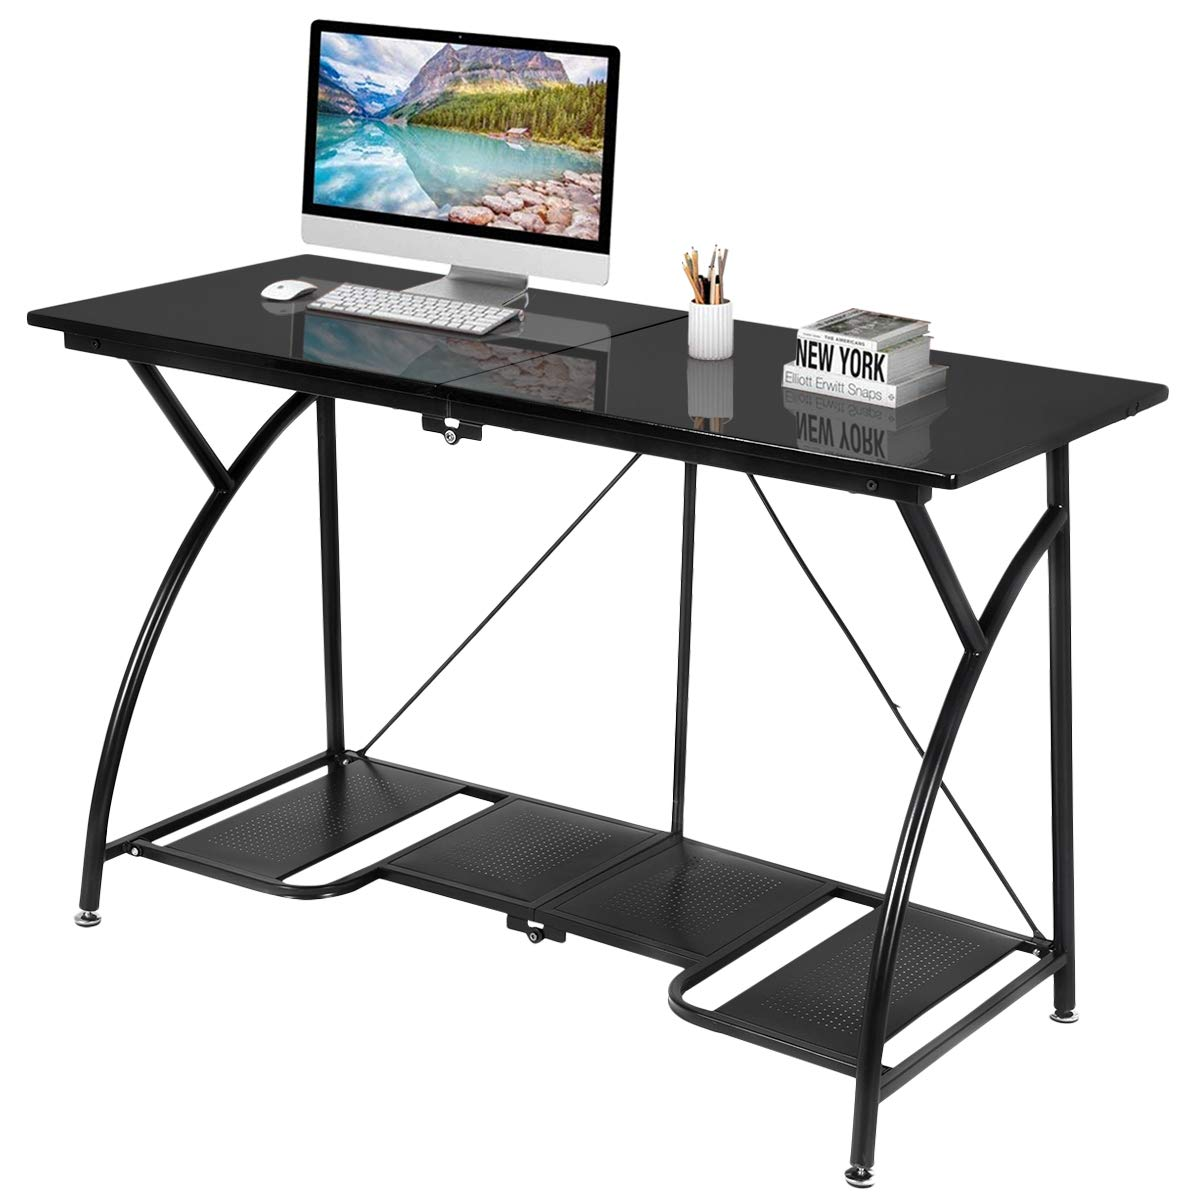 Tangkula Folding Desk, Foldable Computer Desk, Heavy Duty Home Office Desk,  Space Saving Computer Desk, Spacious Laptop Workstation, Simple Compact  Study ...